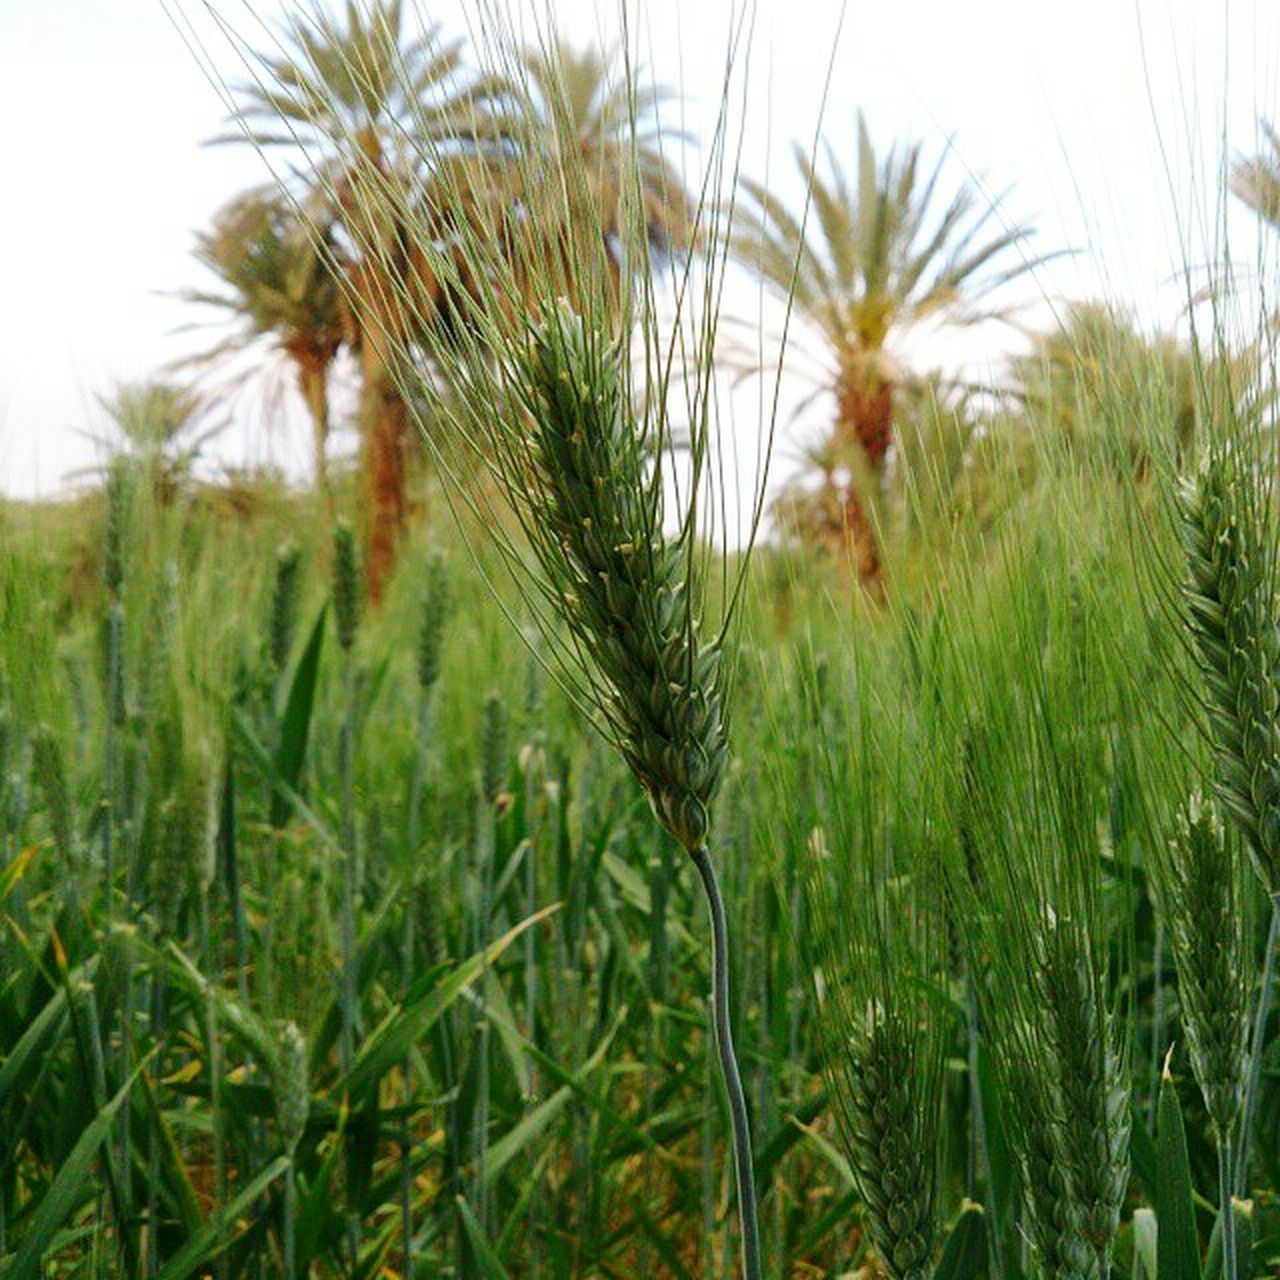 Morocco Errachidia Tadighoust Cereal Plant Nature Field Beauty In Nature Growth Agriculture Close-up Plant Outdoors No People Day Sky